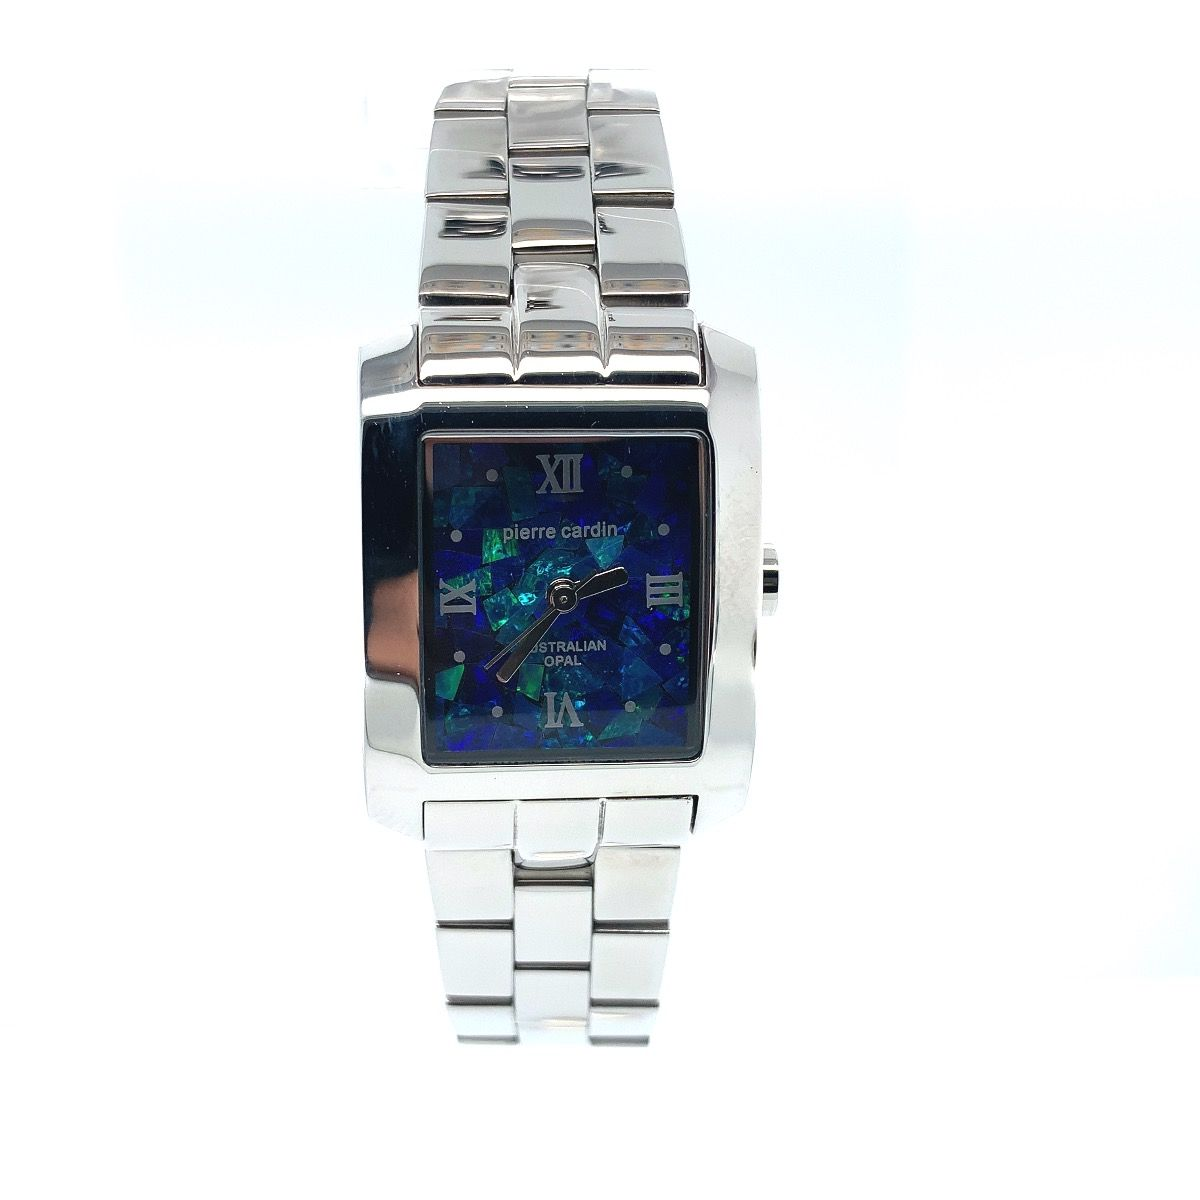 Pierre Cardin ladies opal face watch with Stainless band